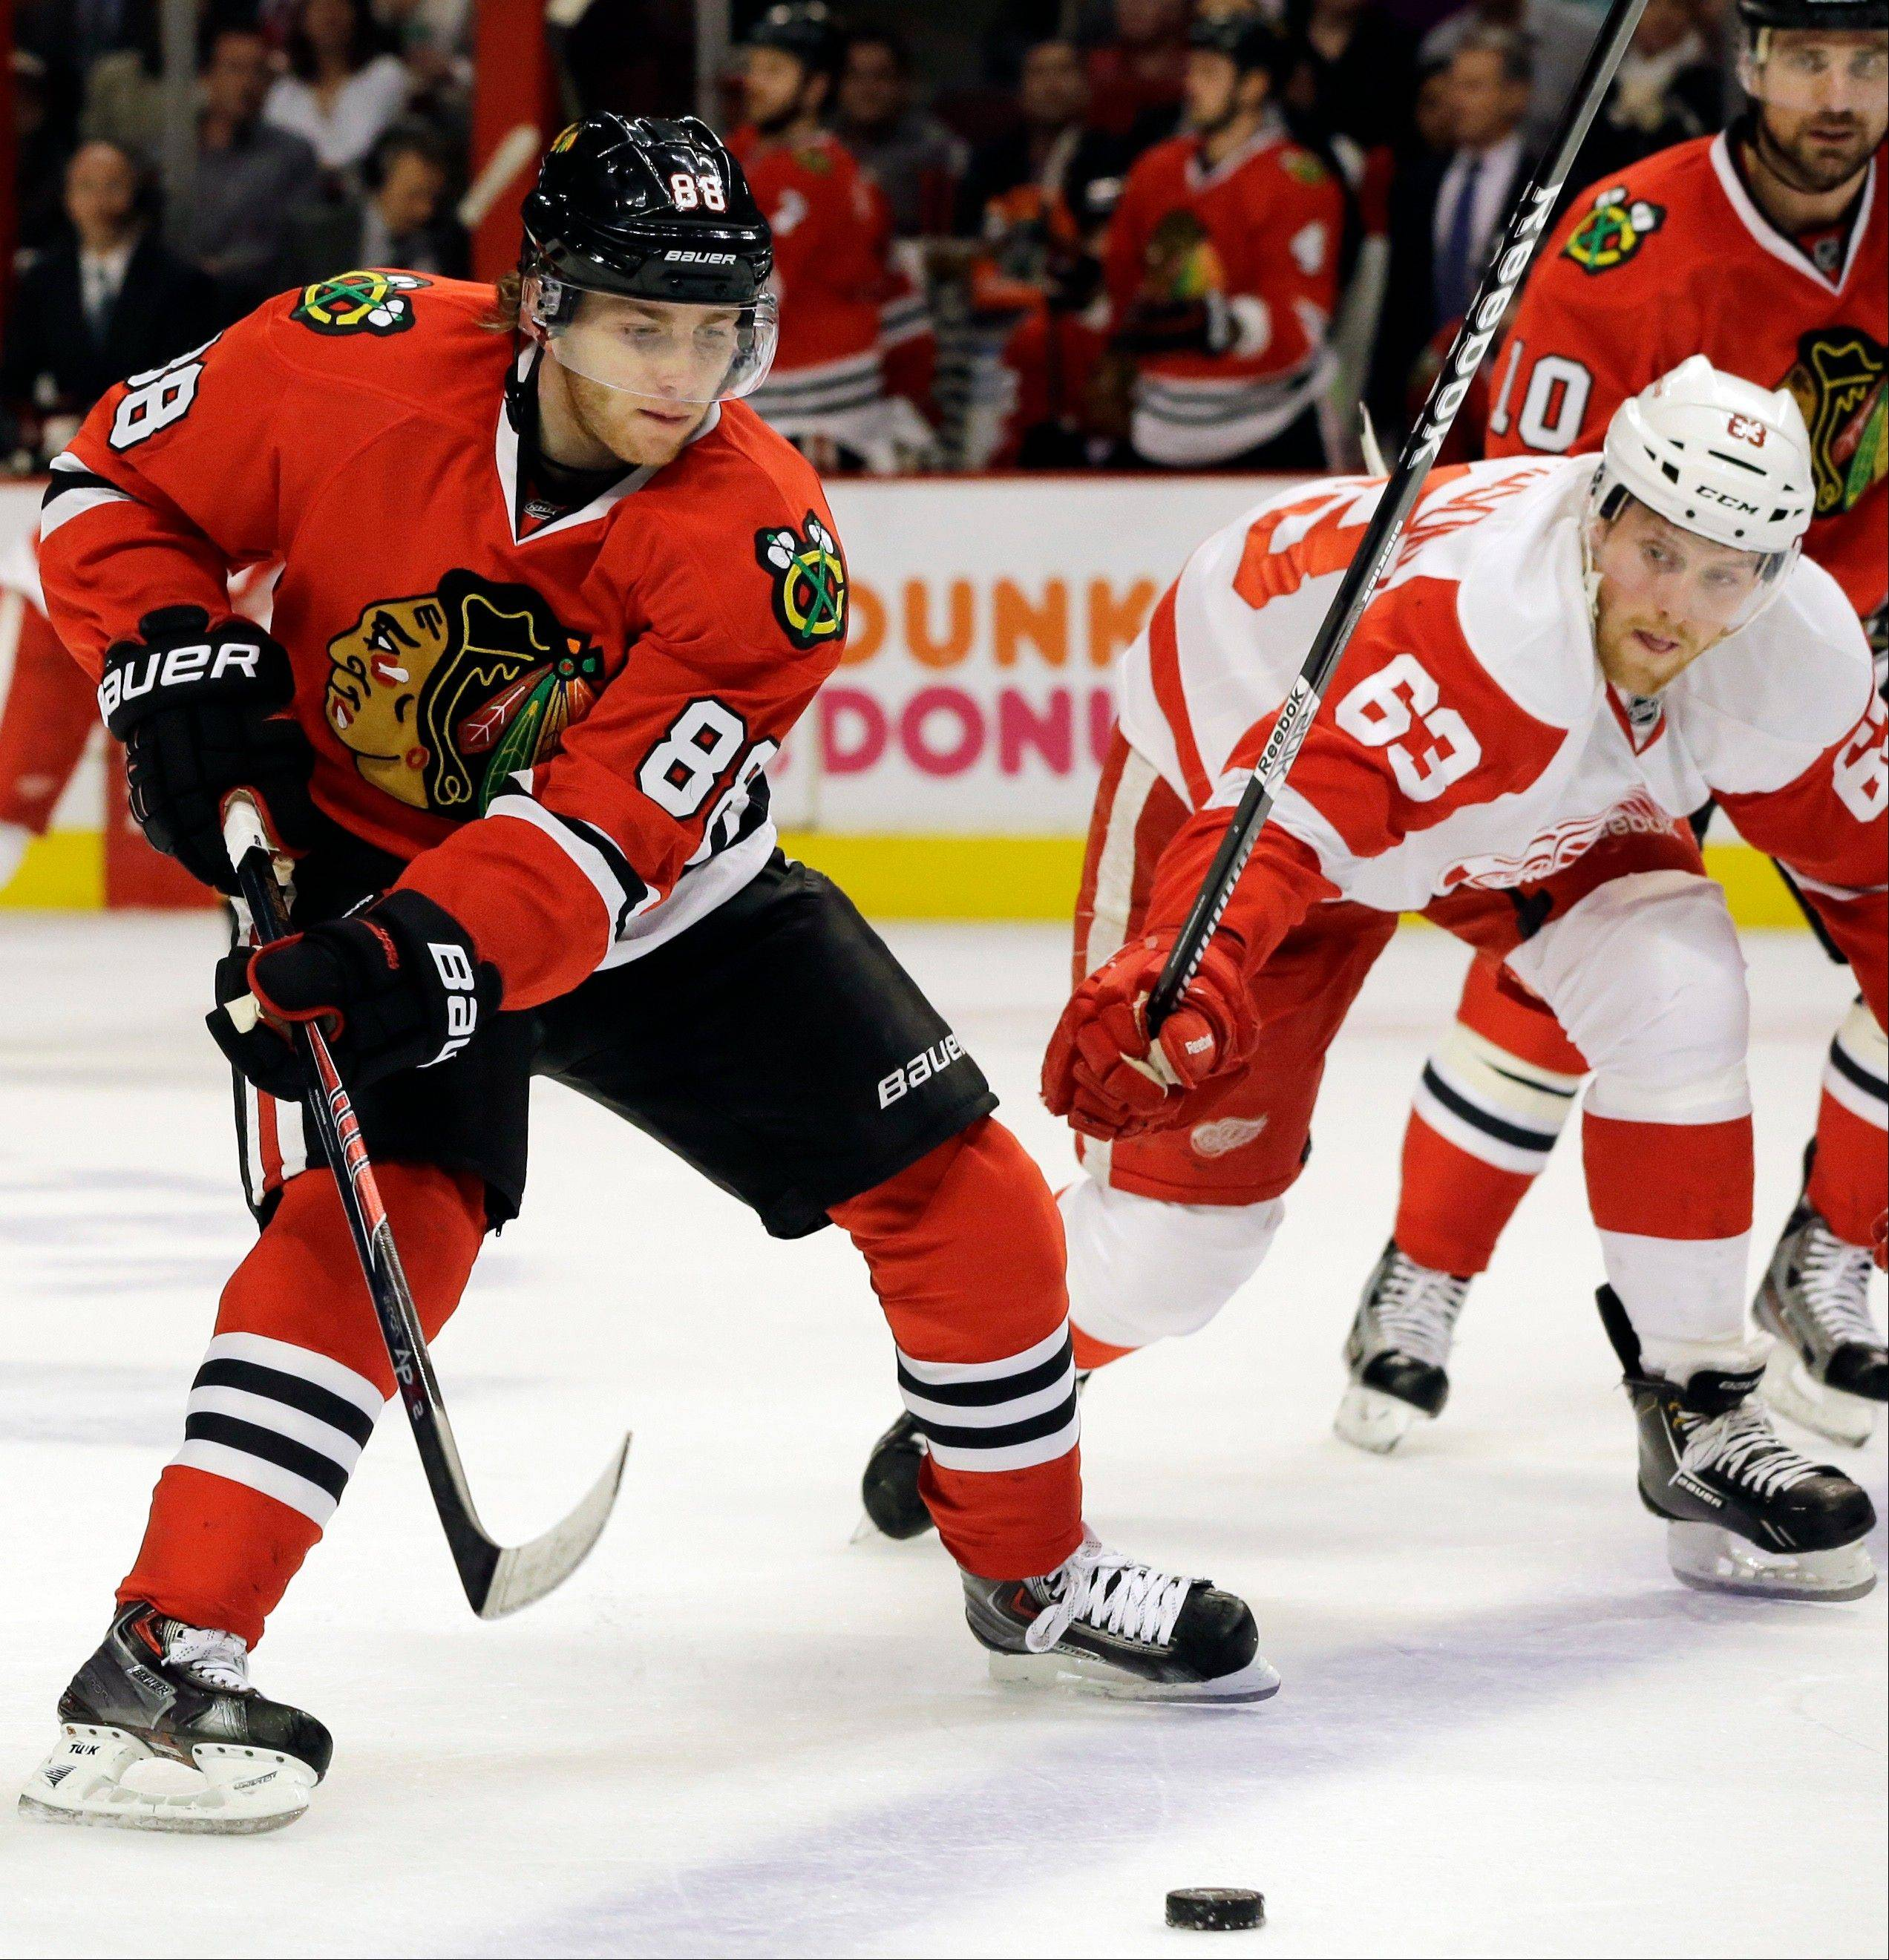 During the regular season, the Blackhawks� Patrick Kane ranked fifth in the NHL with 55 points while receiving only eight penalty minutes, the lowest total among the league�s top 20 scorers. Kane is one of the three finalists for the Lady Byng Memorial Trophy, which the NHL awards to the player who has exhibited the best type of sportsmanship and gentlemanly conduct, combined with a high standard of playing ability.